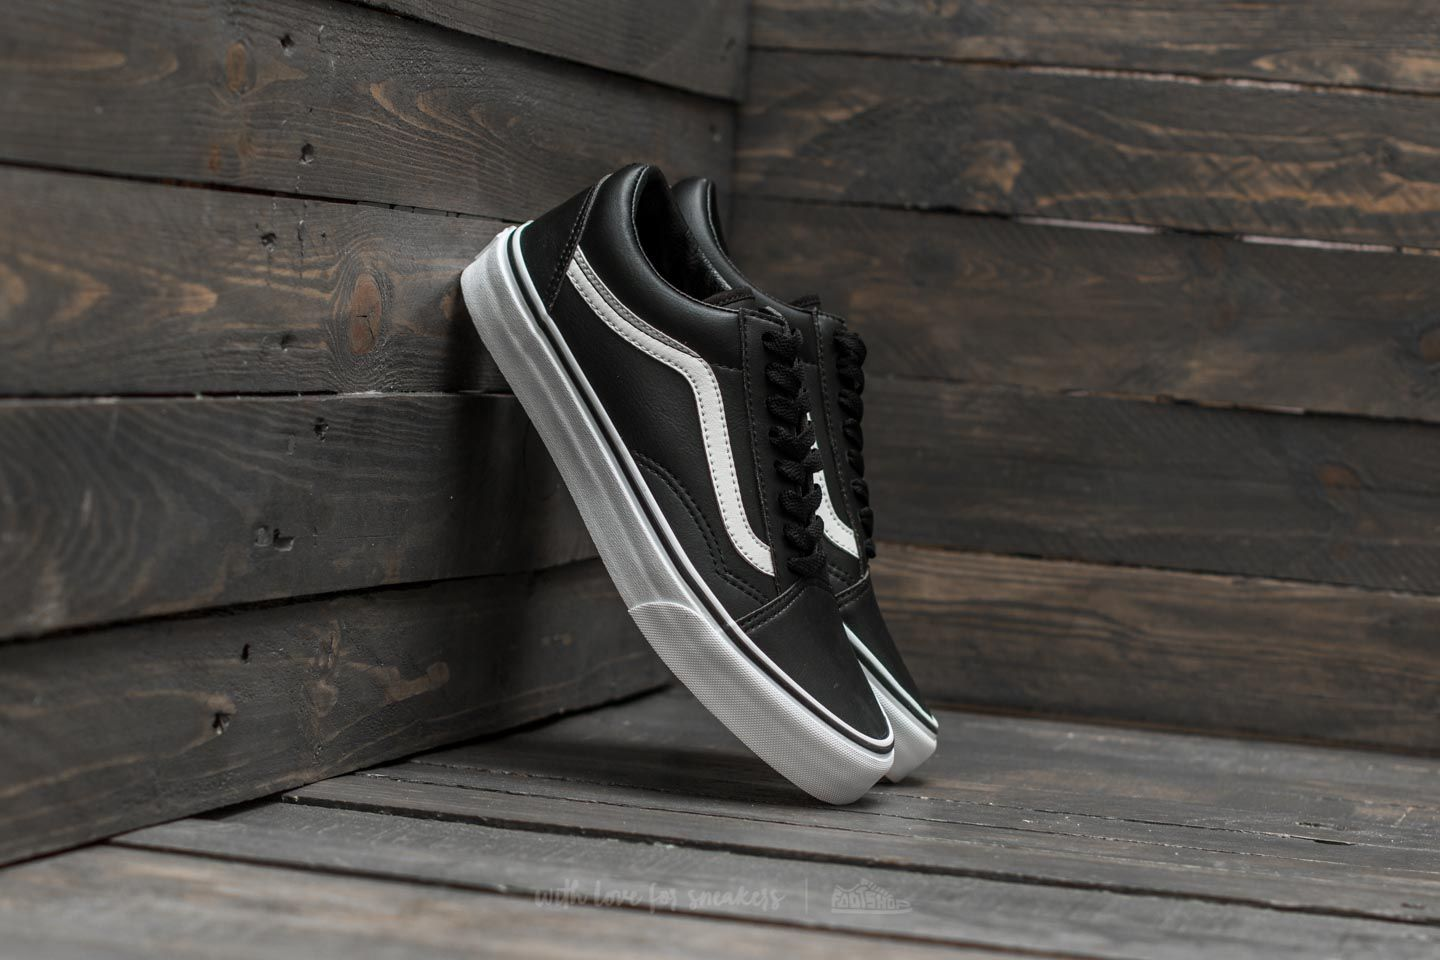 57342d4c82 Vans Old Skool (Classic Tumble) Black  True White